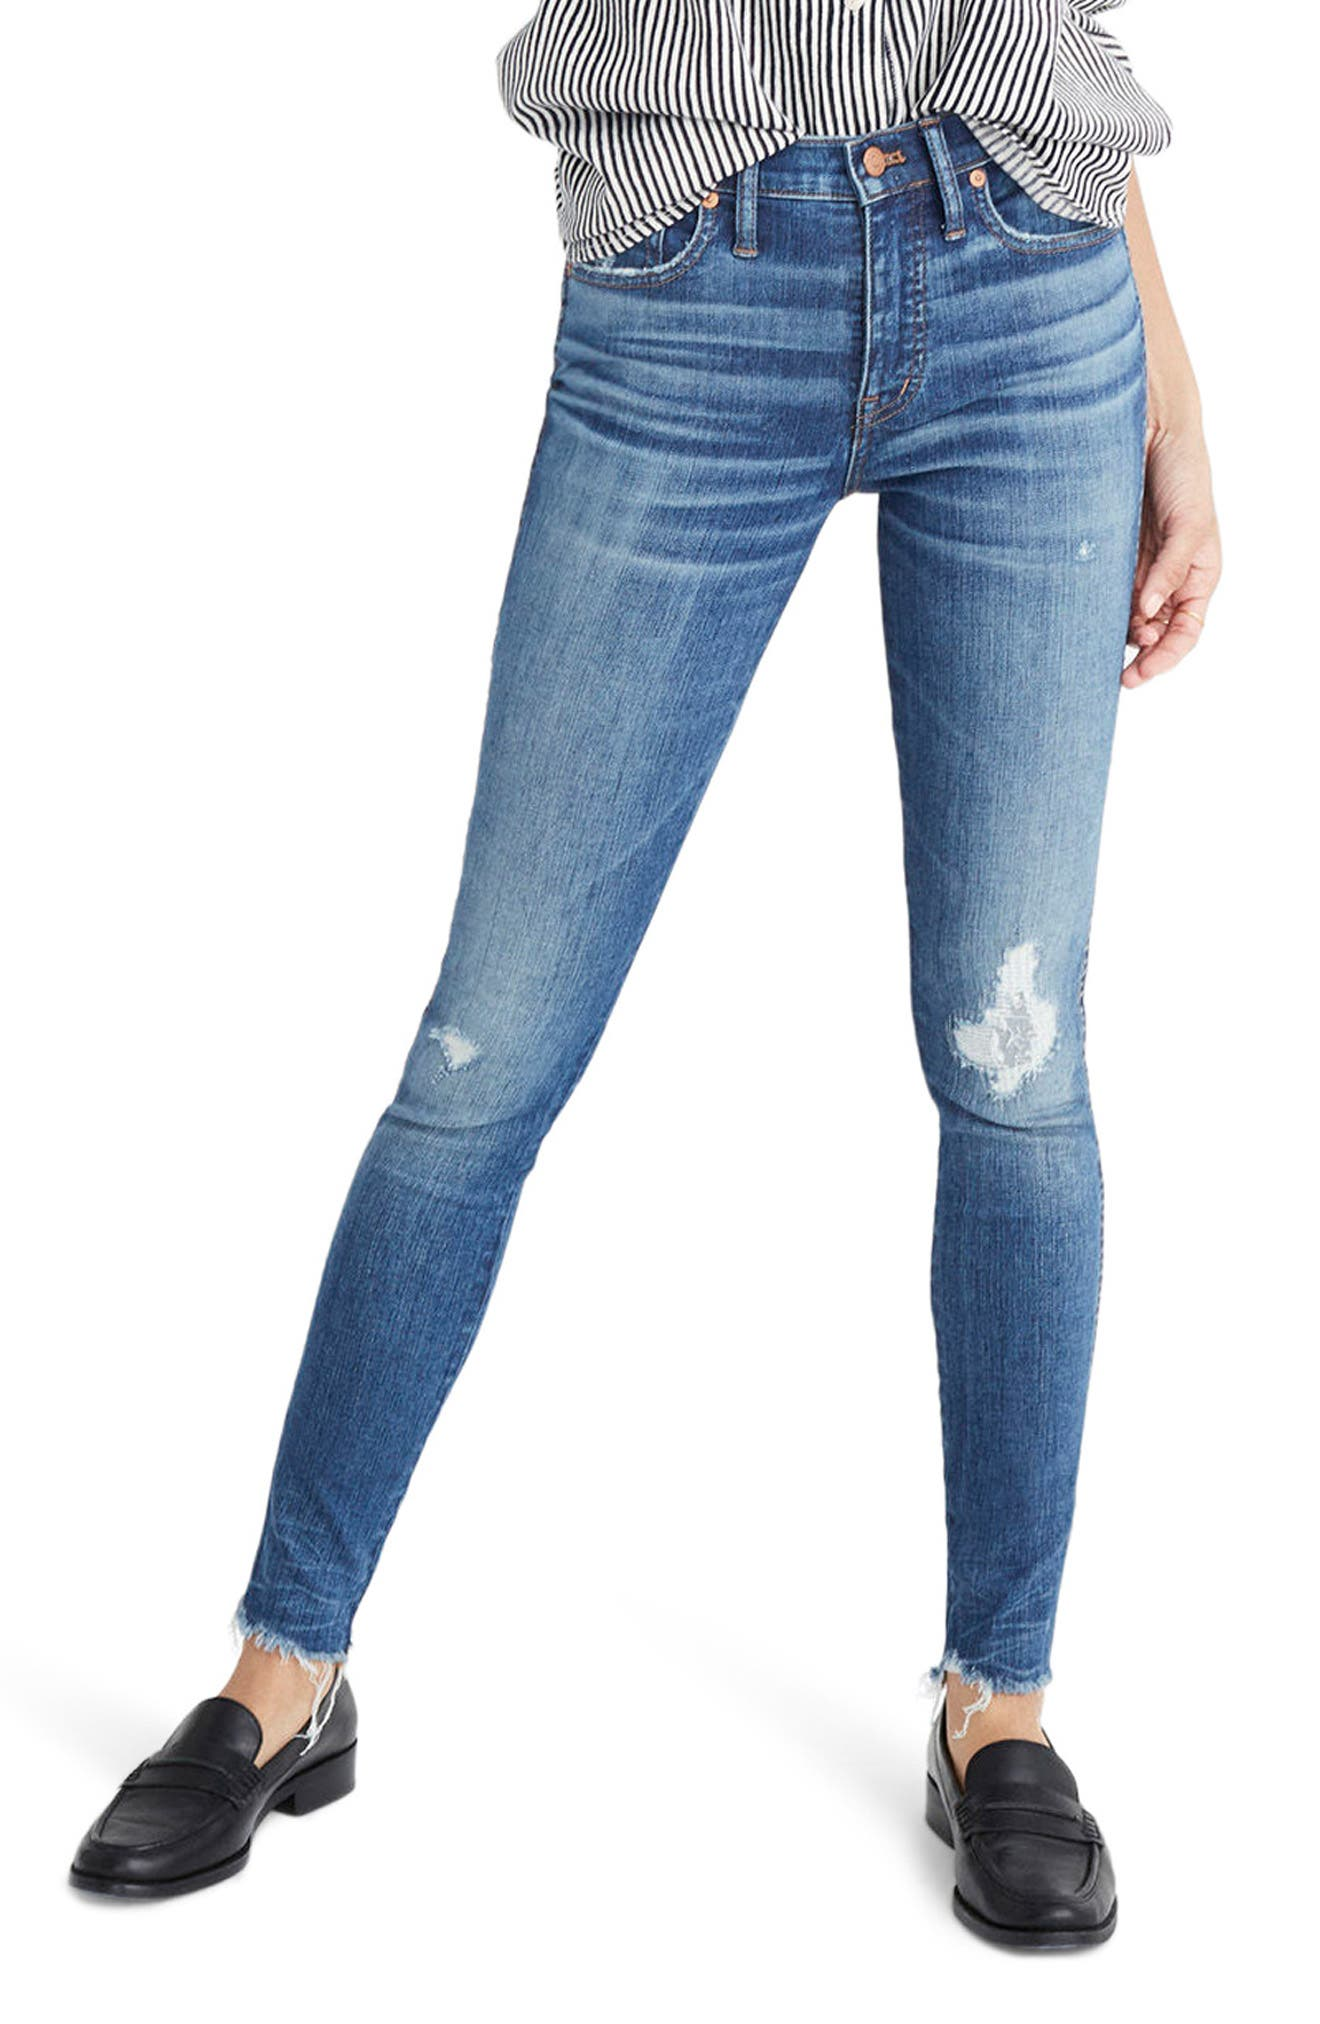 Main Image - Madewell 9-Inch High Waist Ankle Skinny Jeans (Allegra)